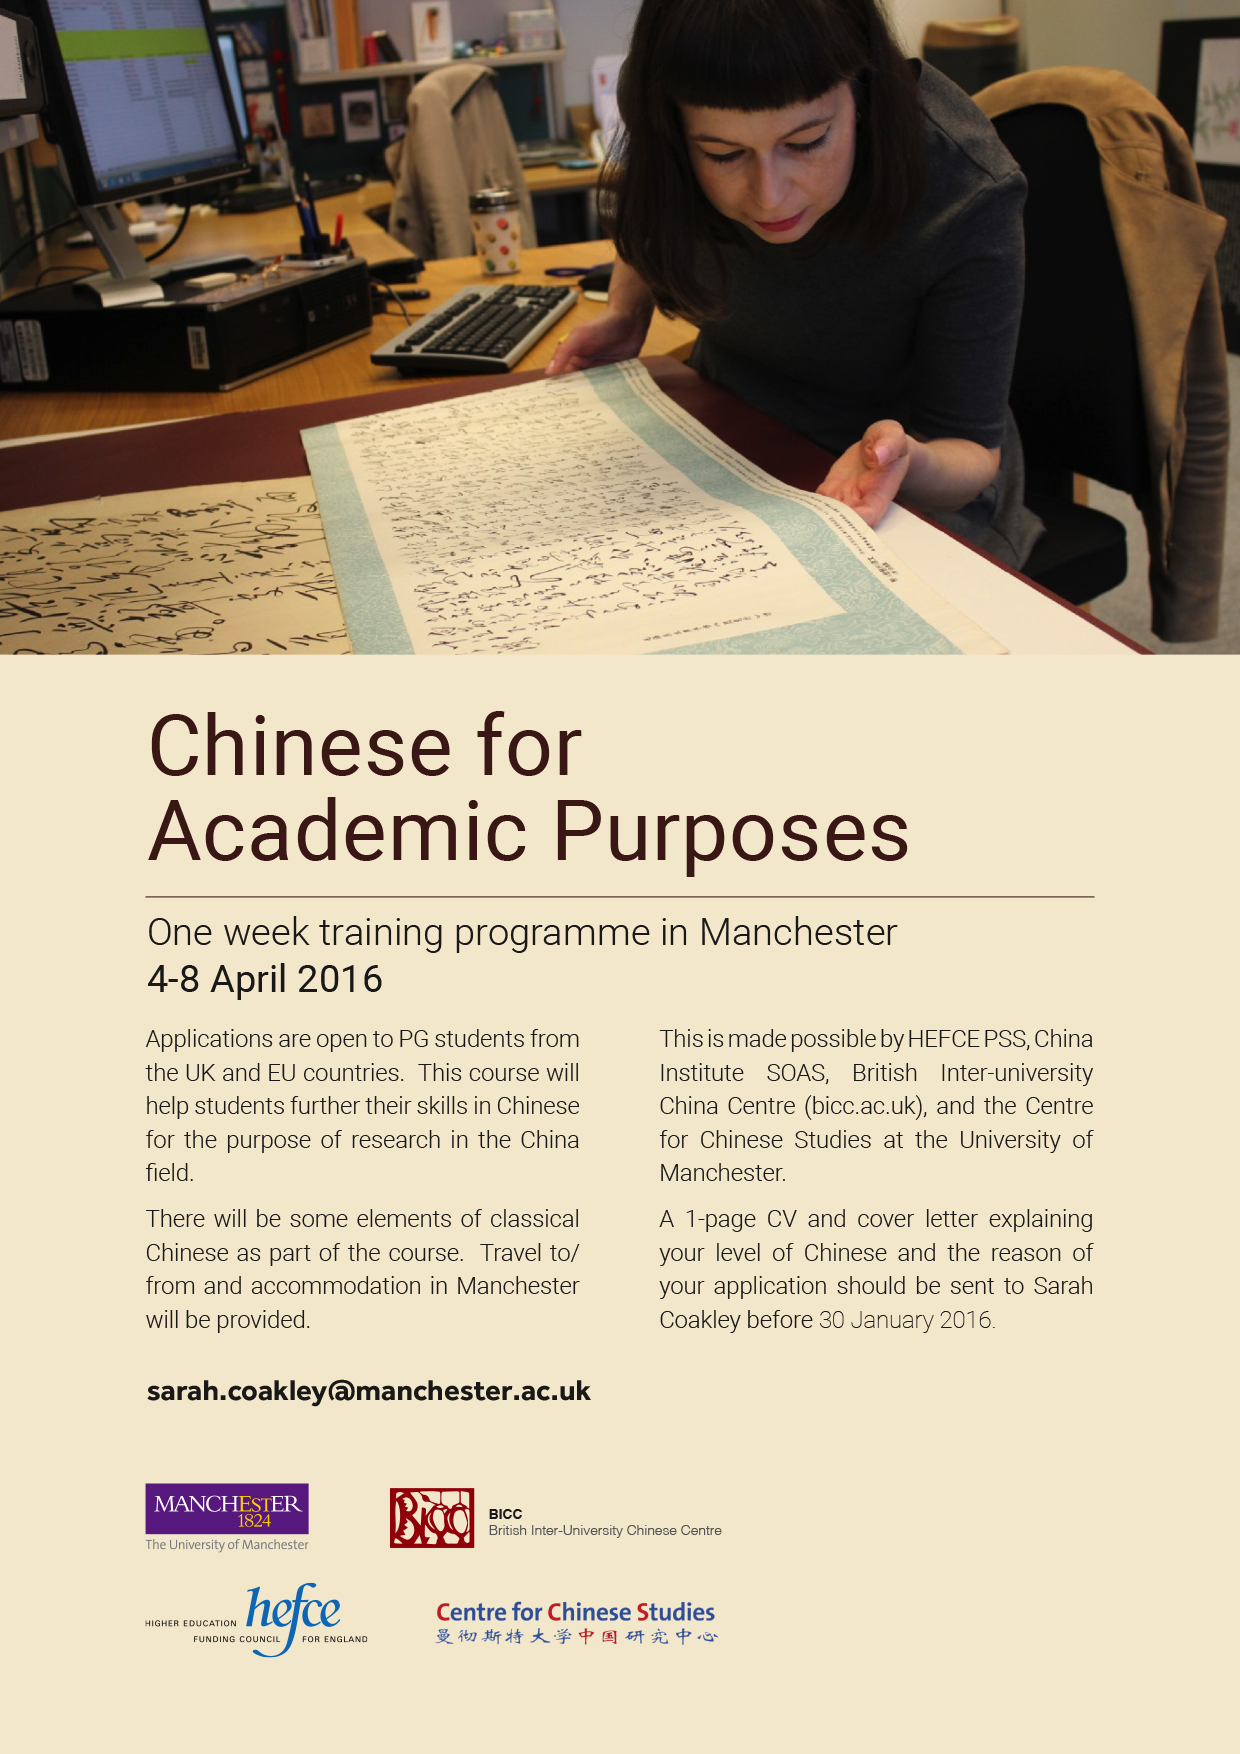 University of manchester british inter university china centre chinese classes spiritdancerdesigns Gallery